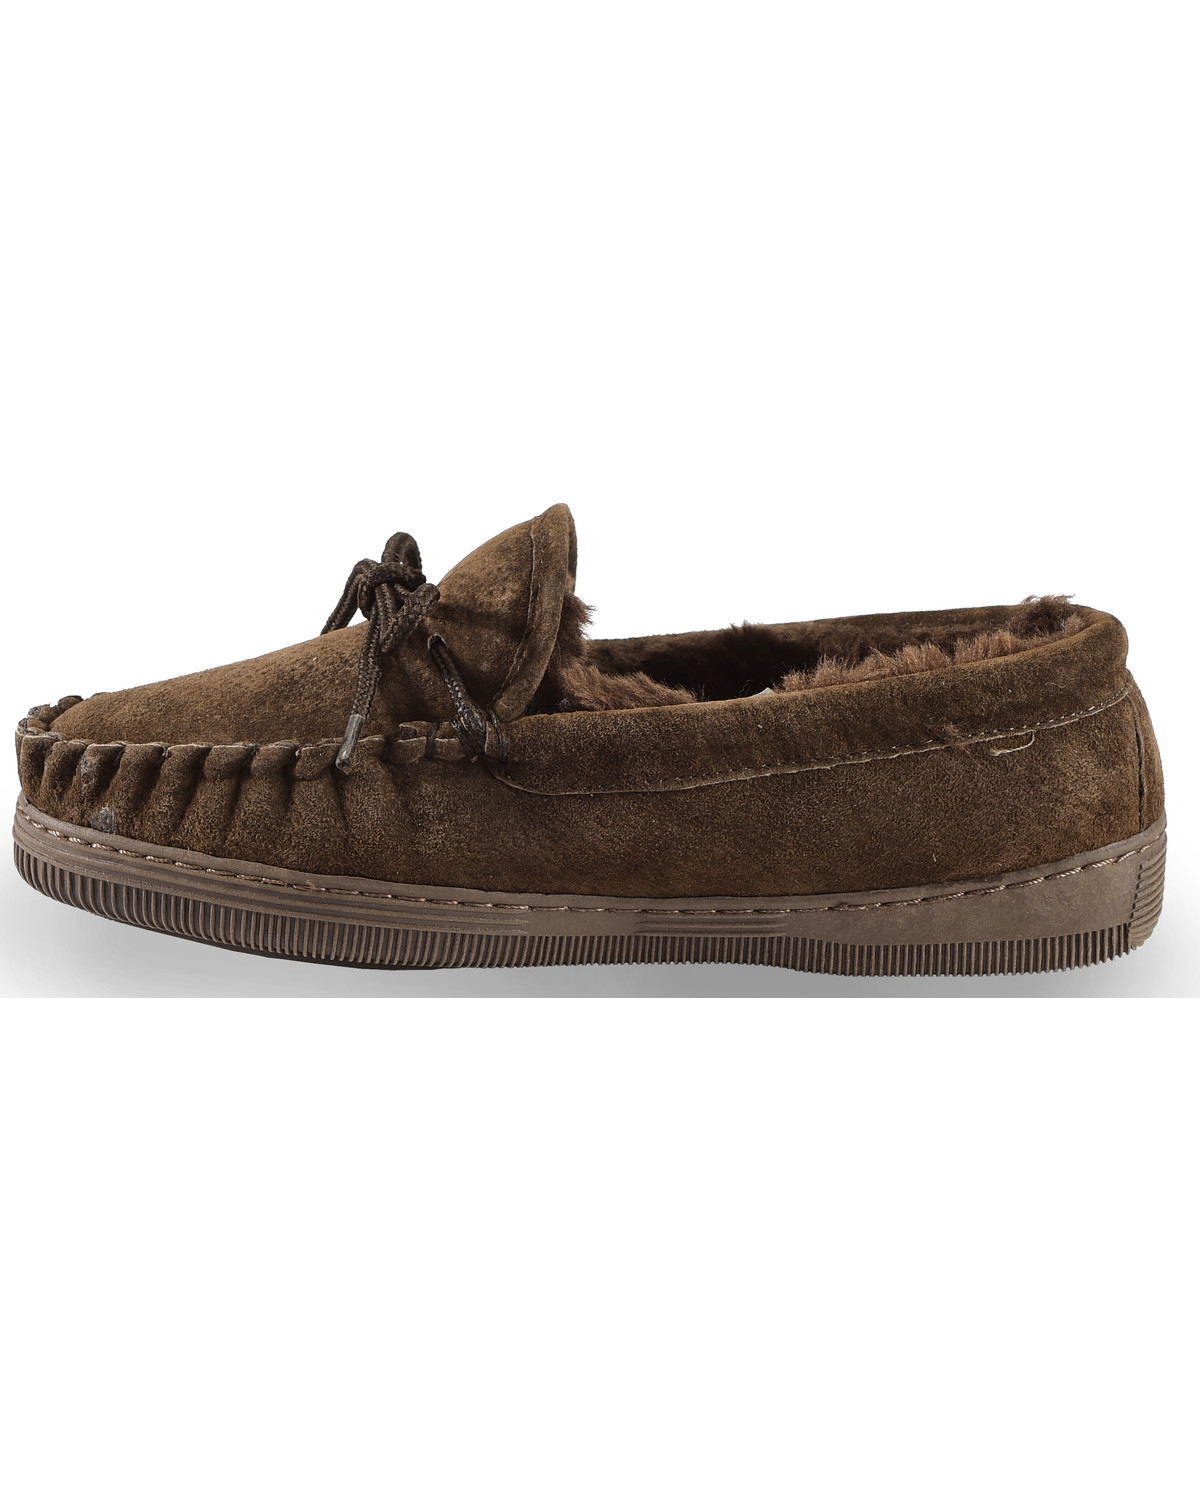 e74fbc9b49dc06 Lamo Women s Leather Moccasin Slippers - Country Outfitter